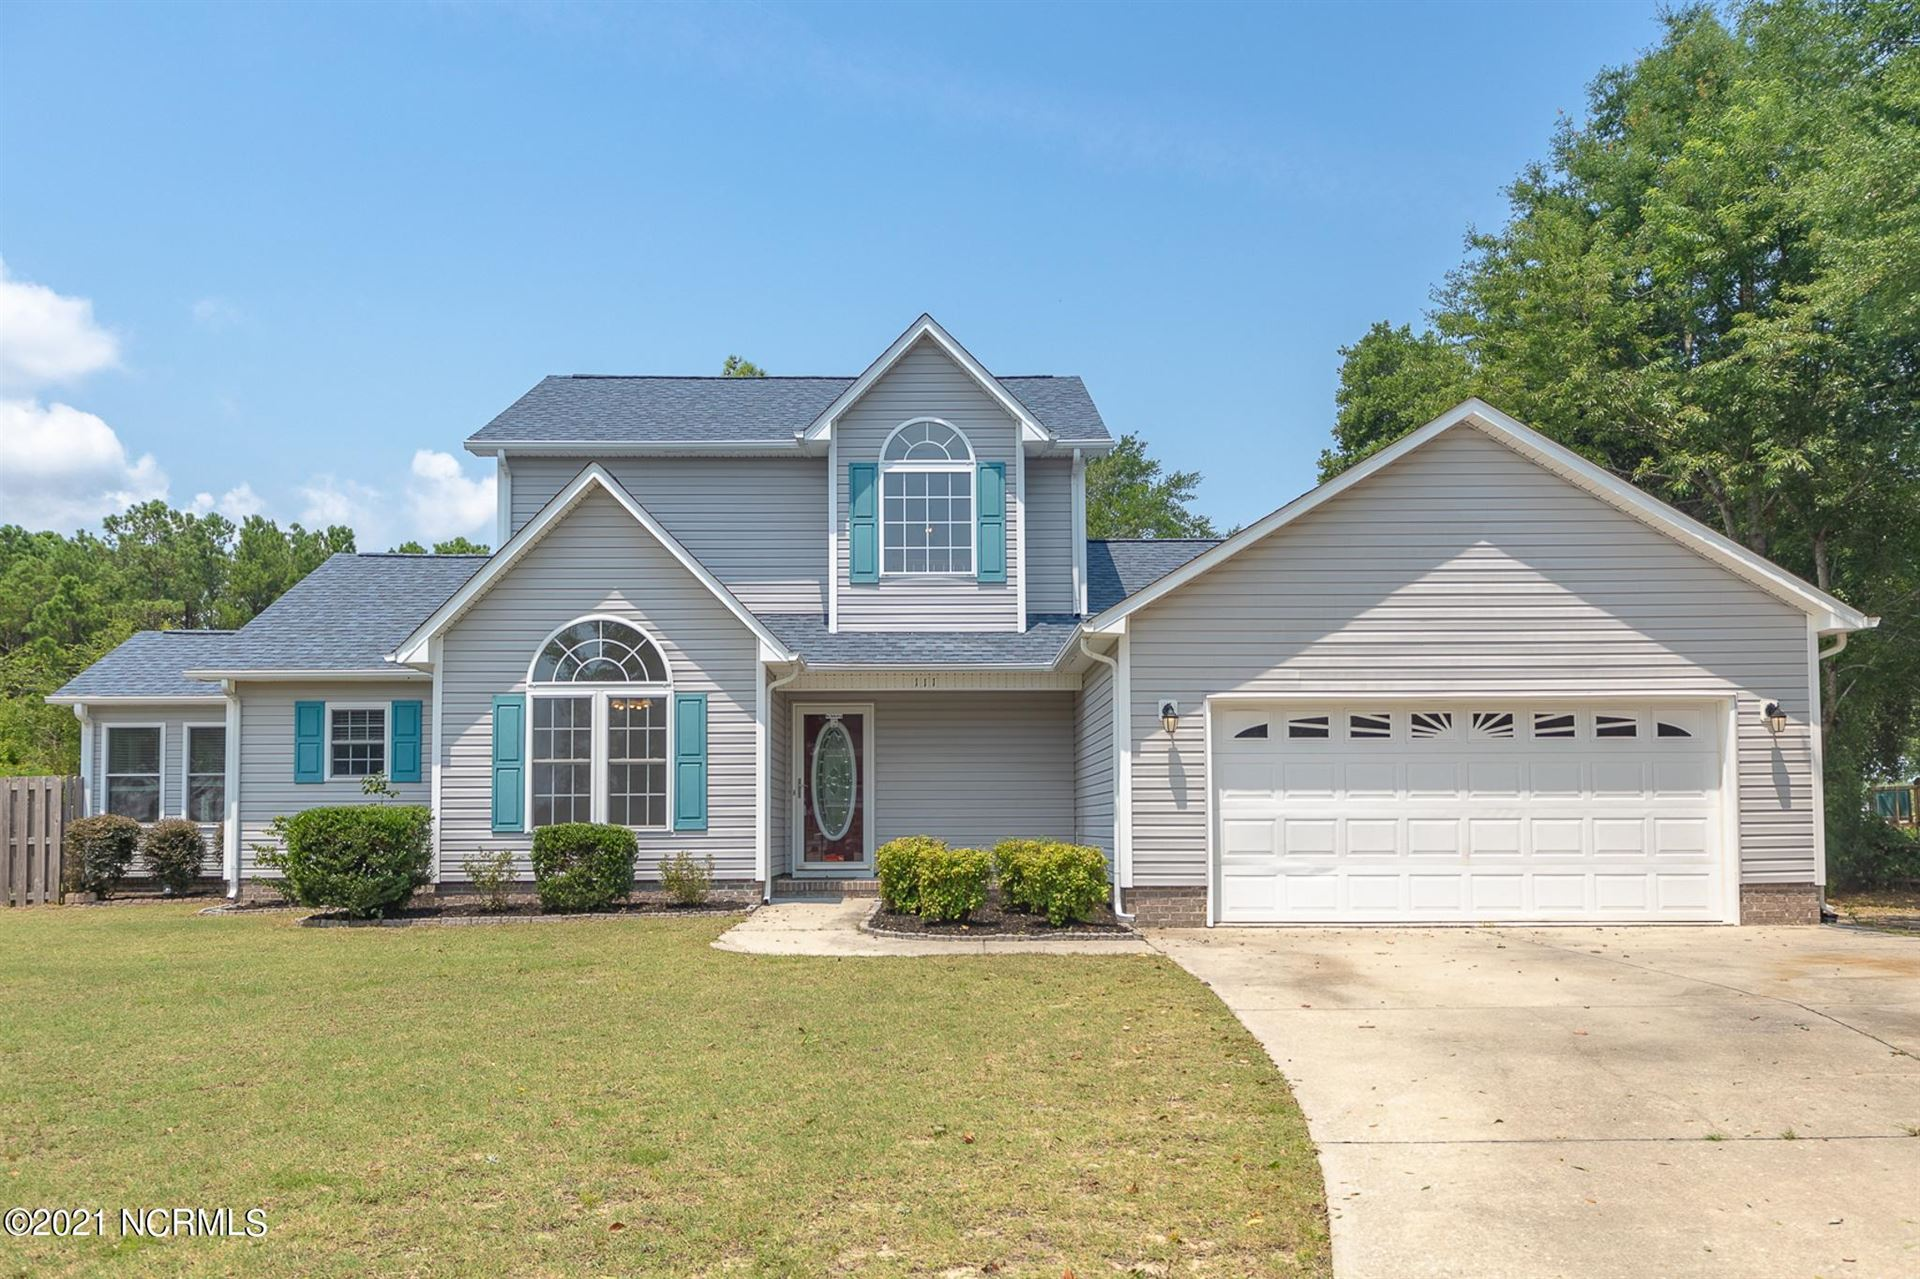 Photo for 111 Mainsail Drive, Sneads Ferry, NC 28460 (MLS # 100283943)